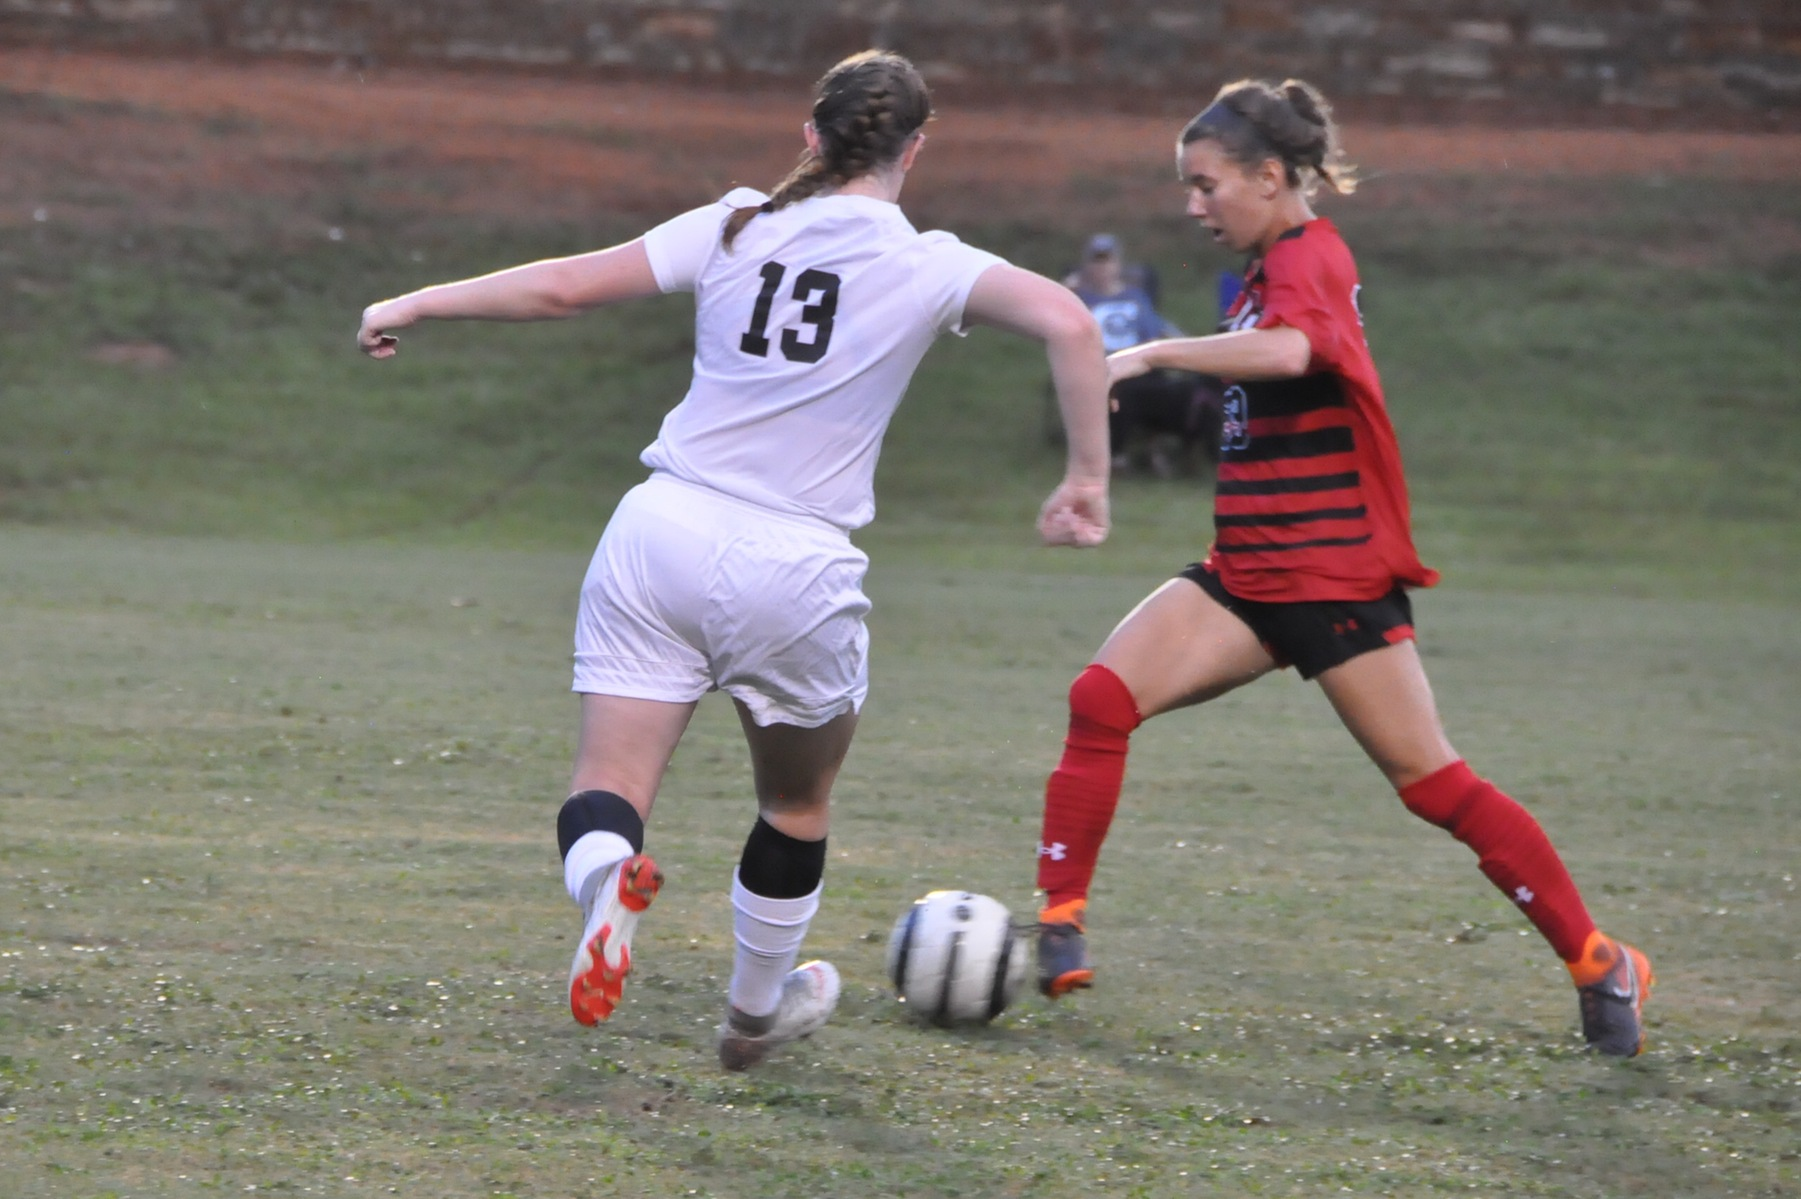 Women's Soccer: Panthers, Millsaps play to scoreless tie